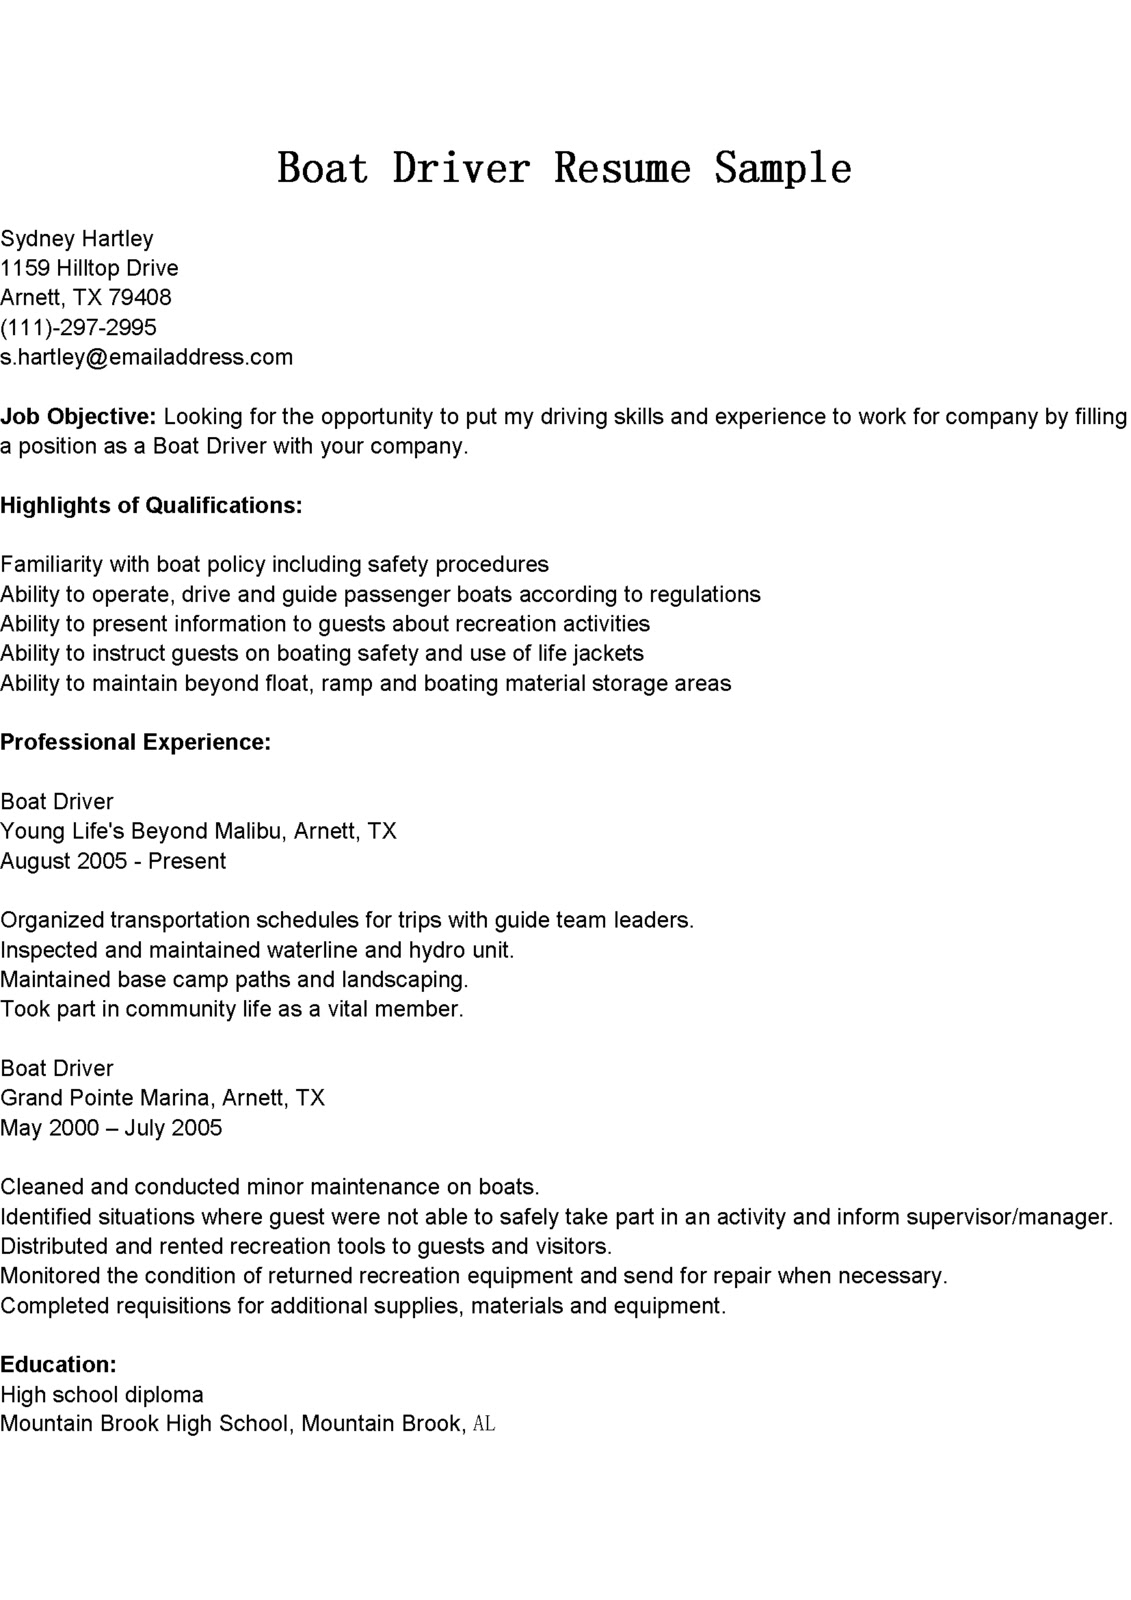 truck driver resume sample - Truck Driver Resume Examples